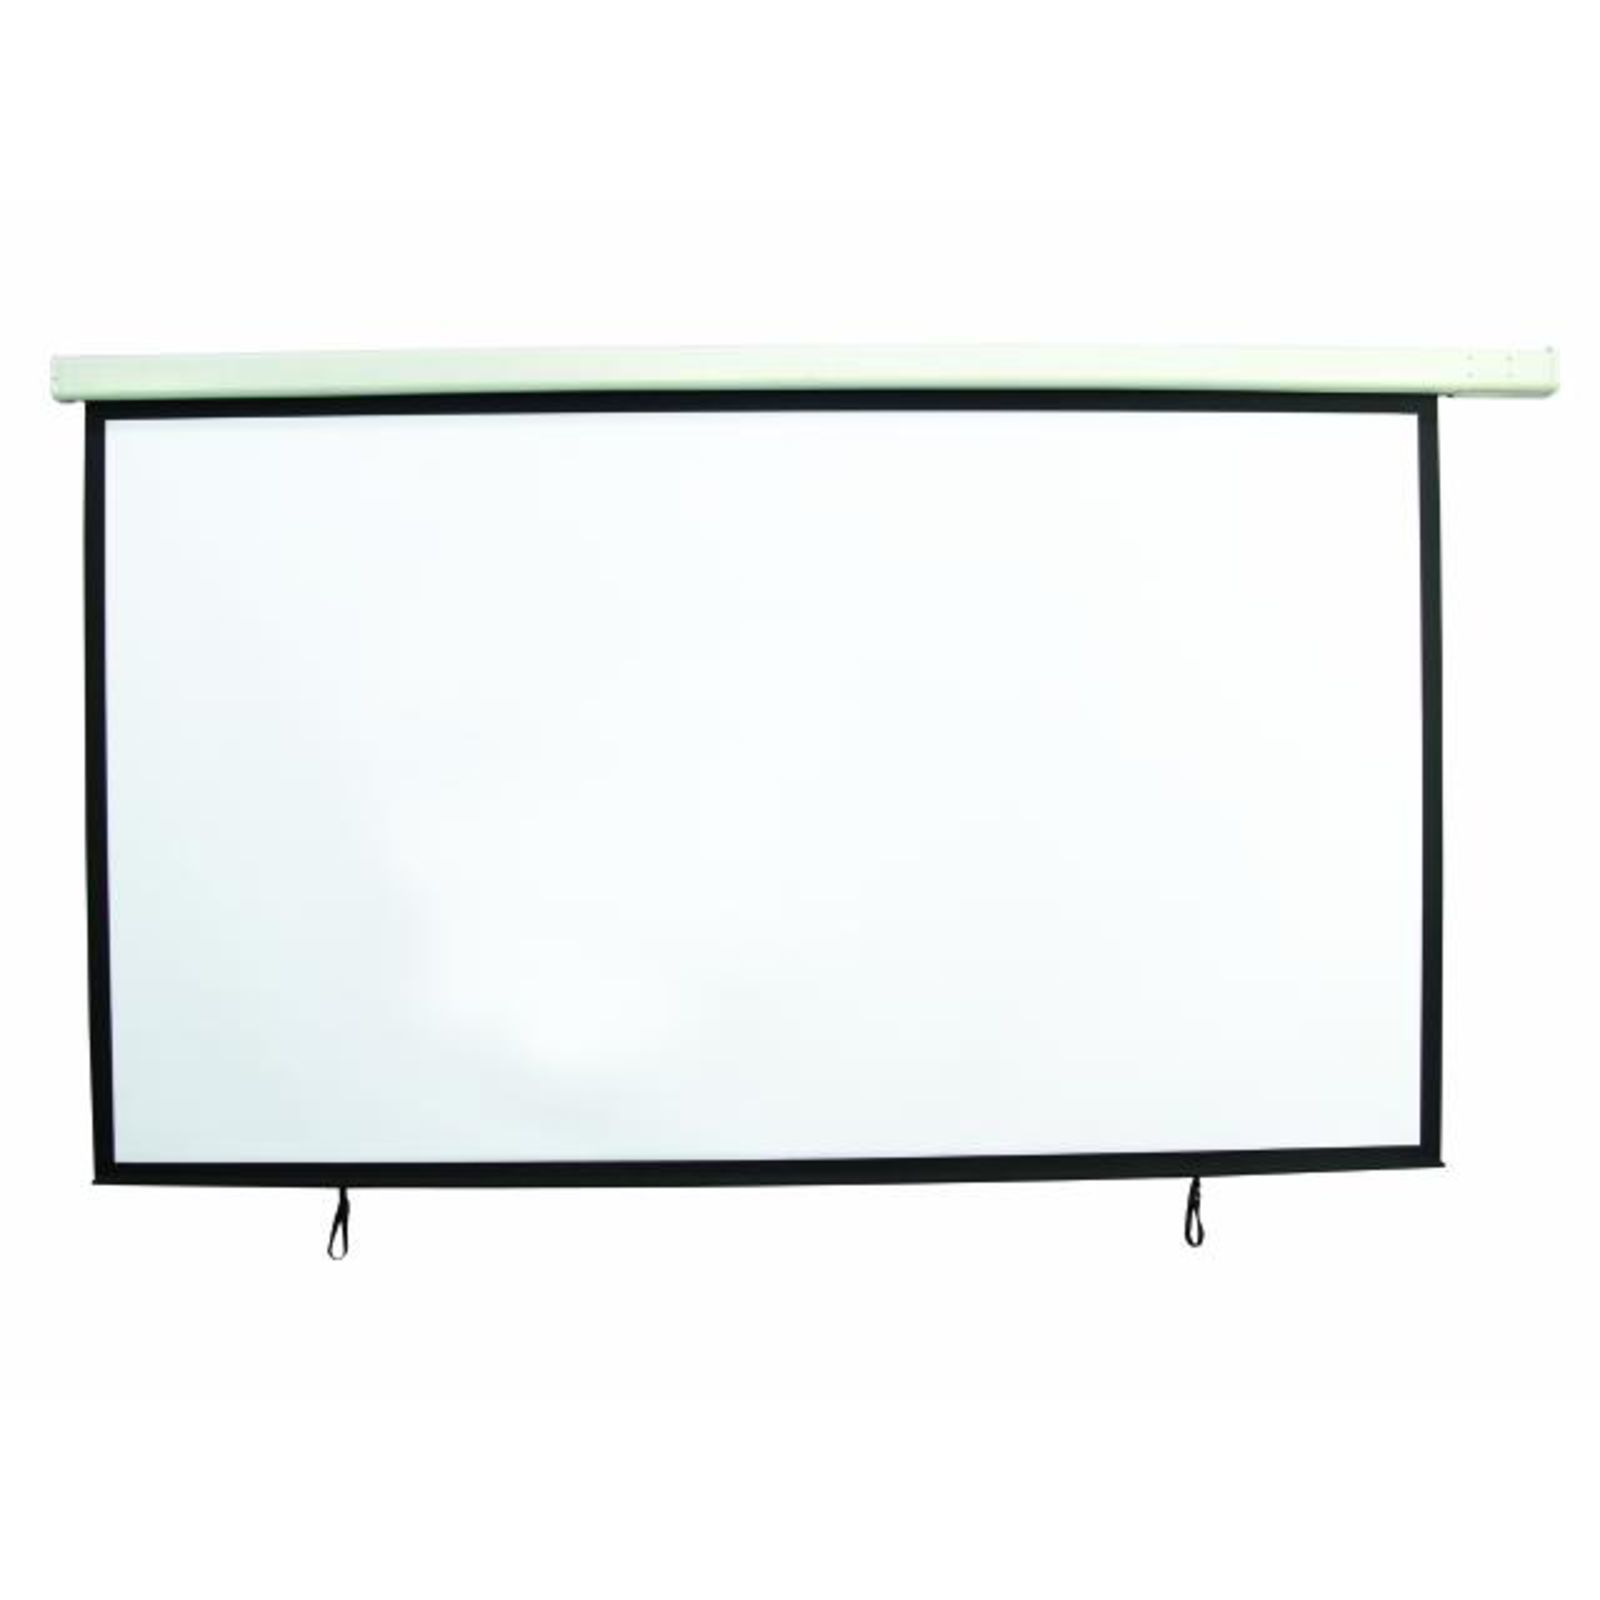 "Eurolite Motorized Screen IR 16:9 240 x 135cm 108"" Produktbillede"